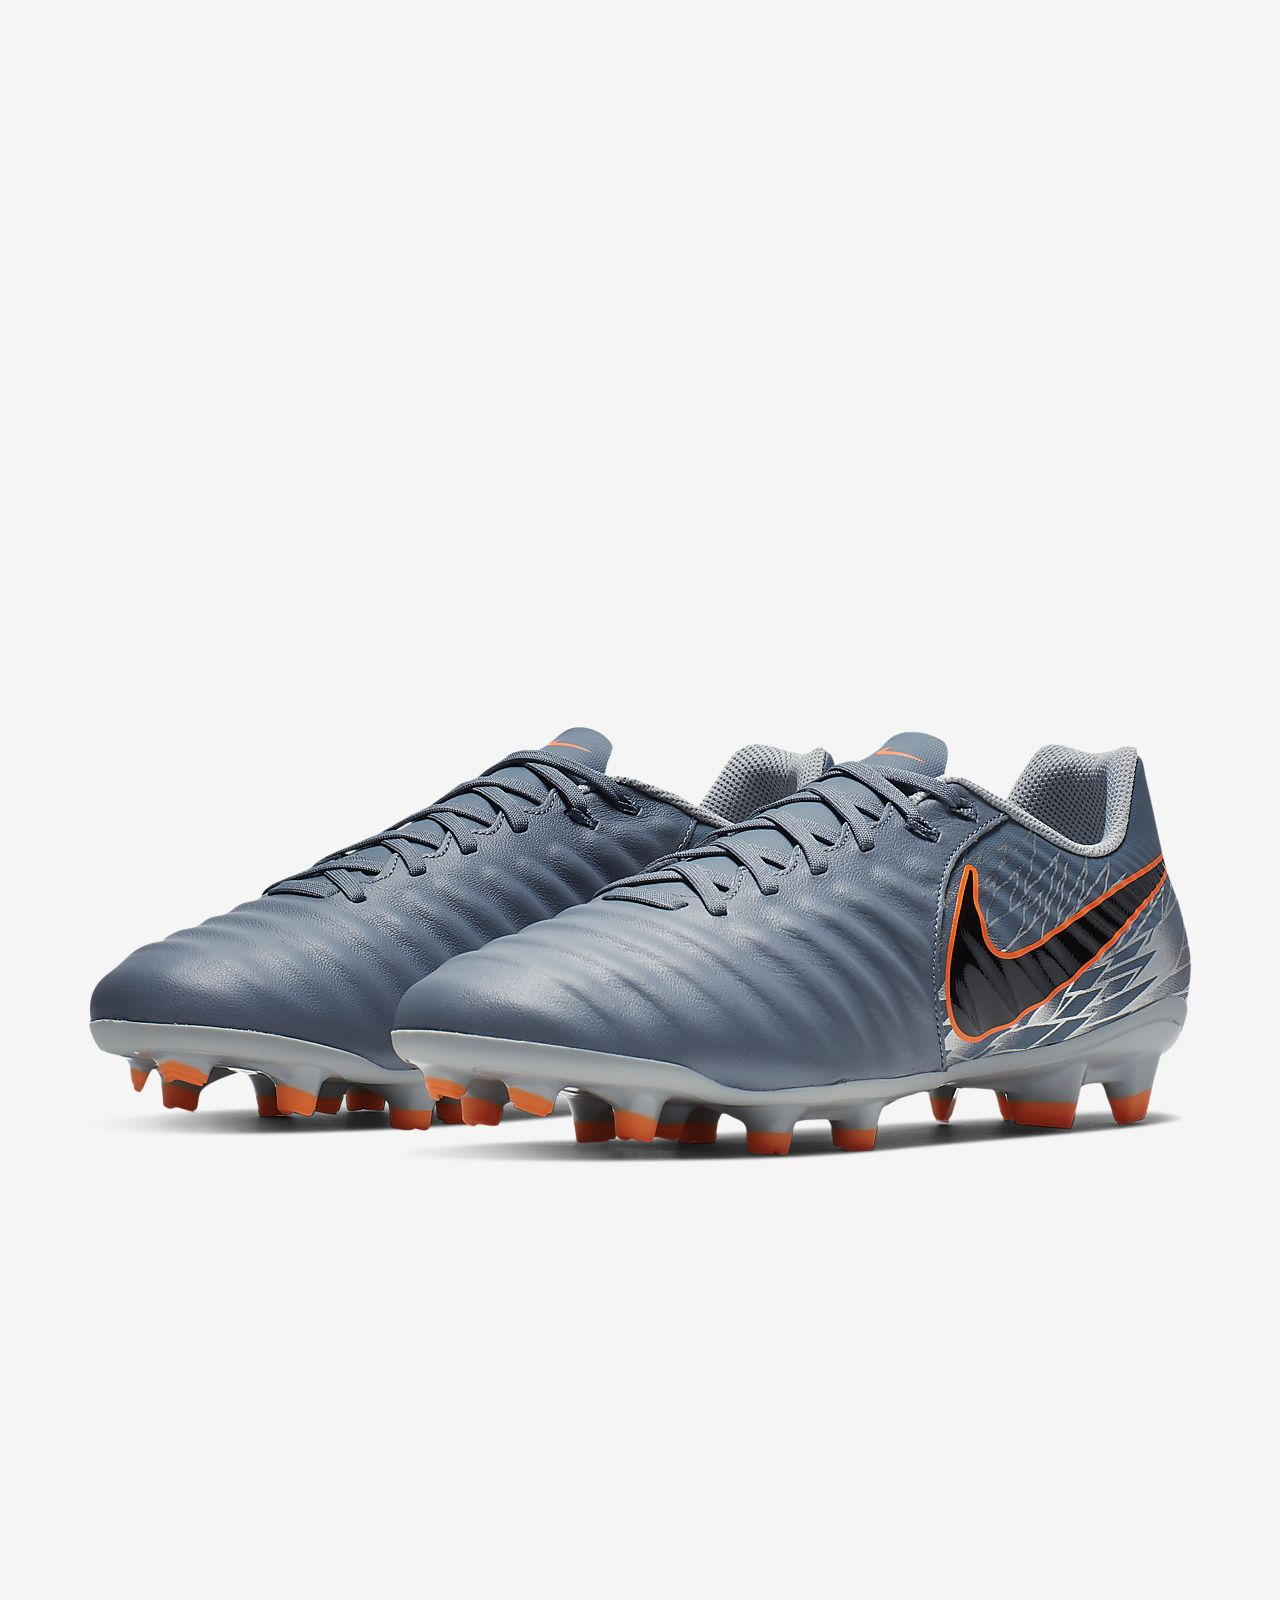 1d144c9bd12 Nike Tiempo Legend VII Academy Firm-Ground Football Boot. Nike.com GB